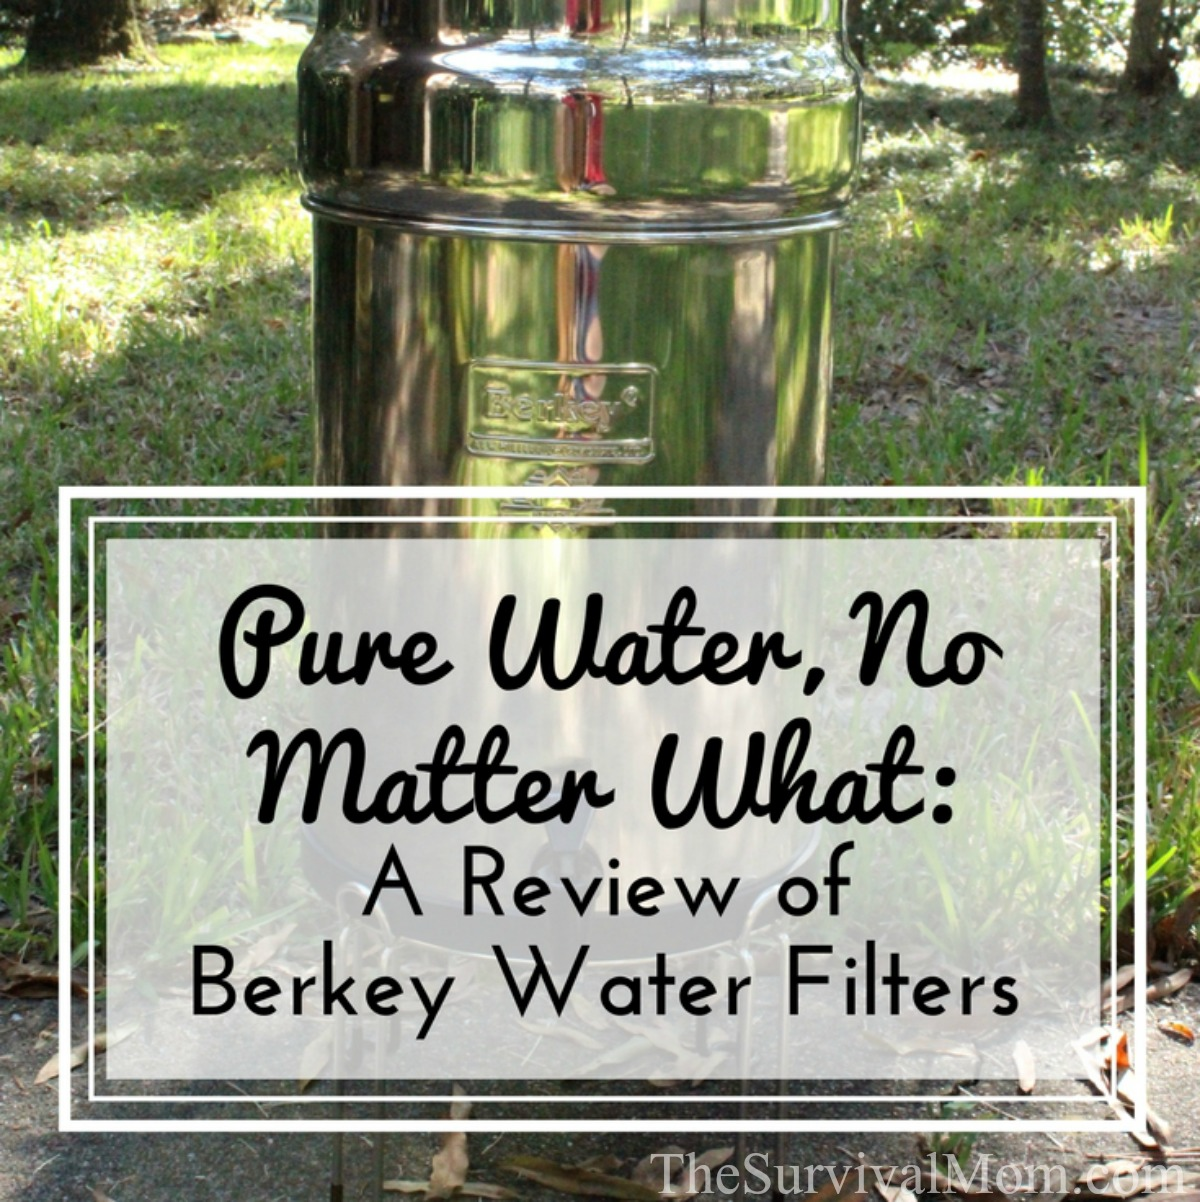 Pure Water No Matter What A Review of Berkey Water Filters via The Survival Mom